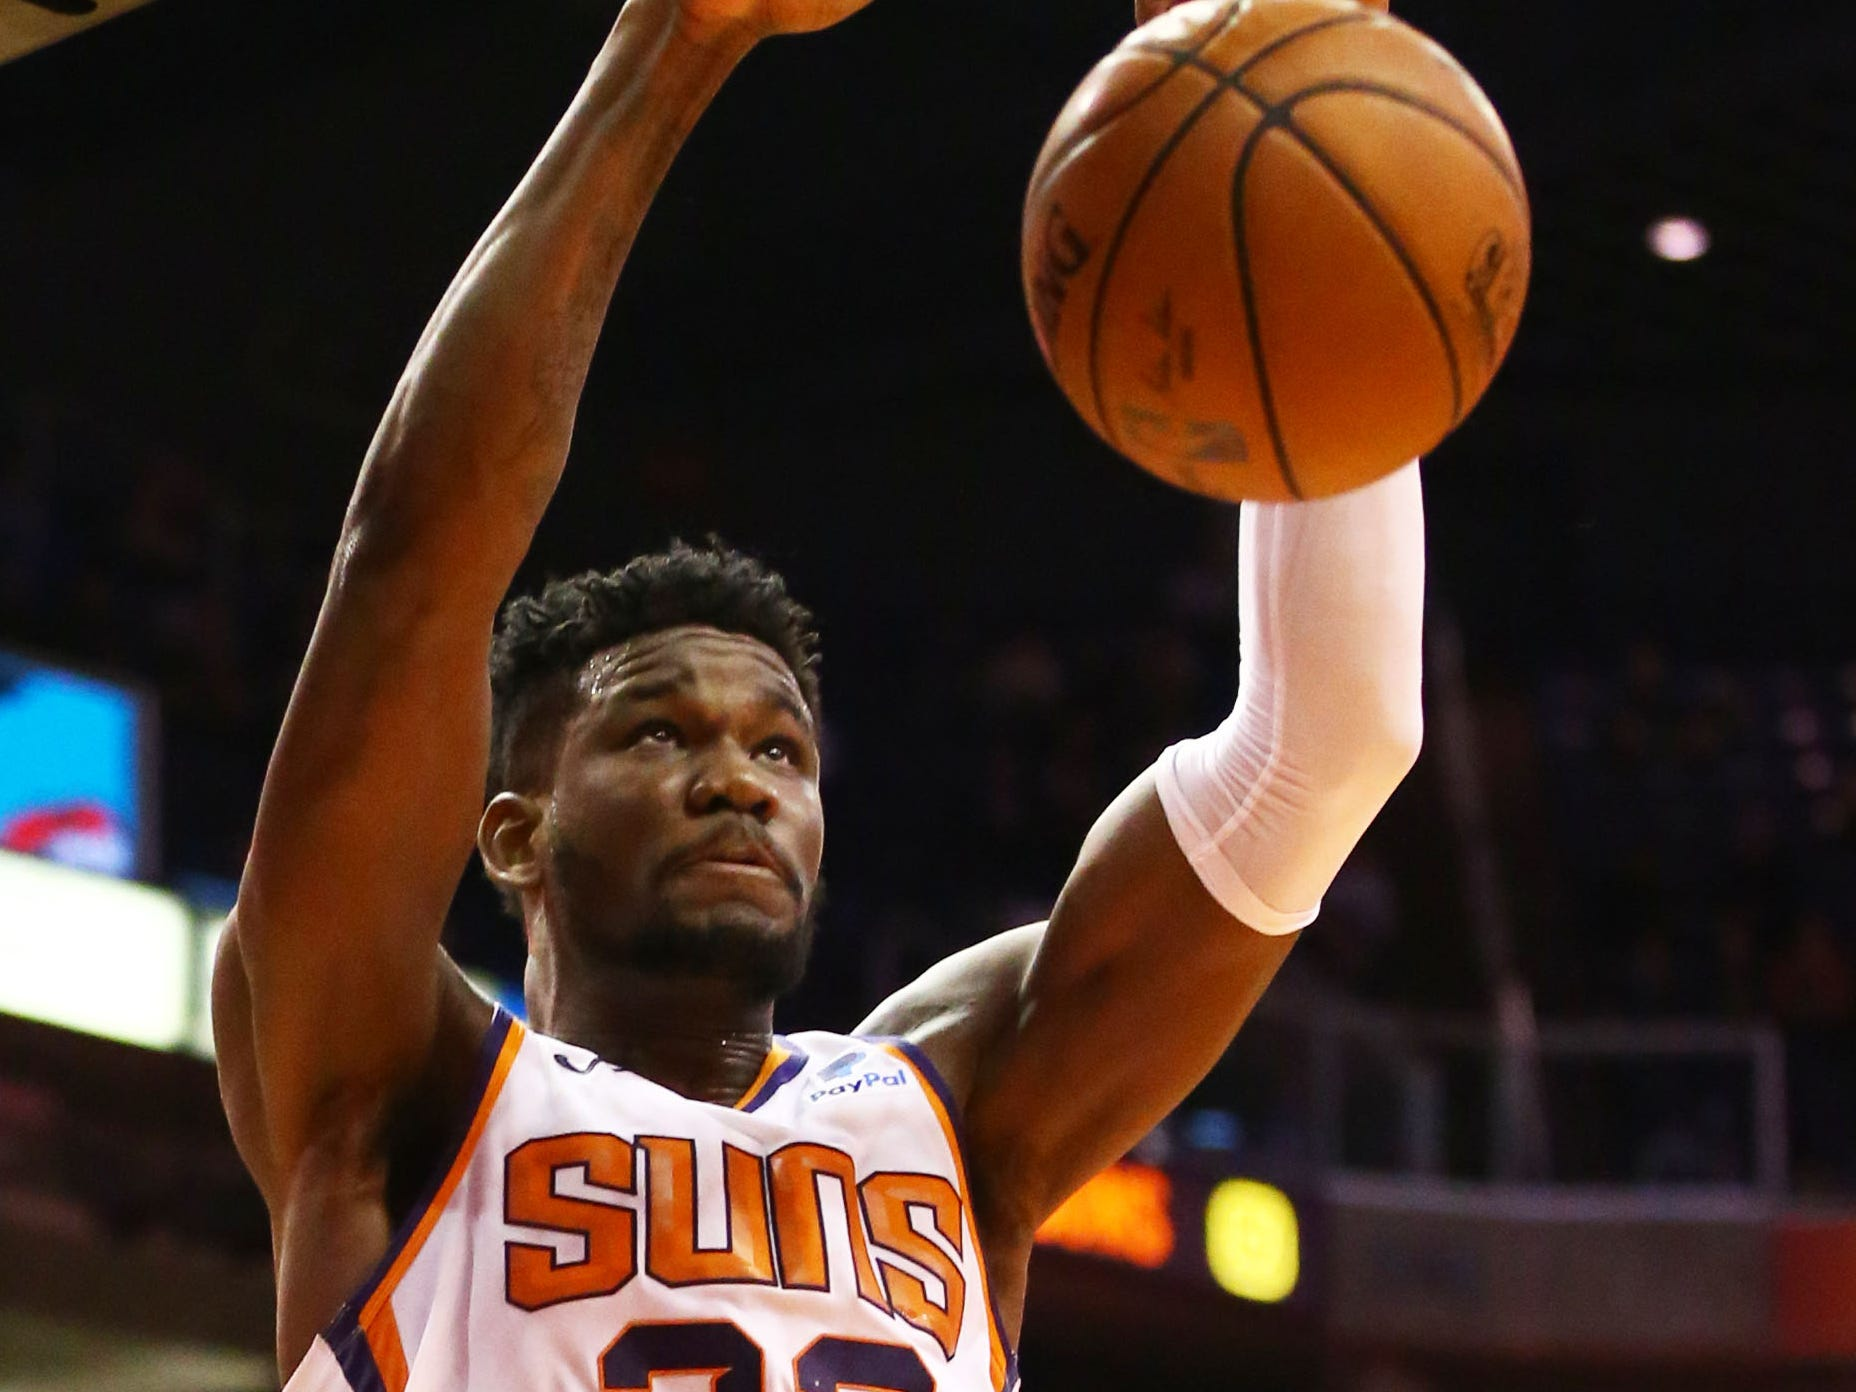 Phoenix Suns center Deandre Ayton dunks the ball against the Sacramento Kings in the first half on Jan. 8 at Talking Stick Resort Arena.